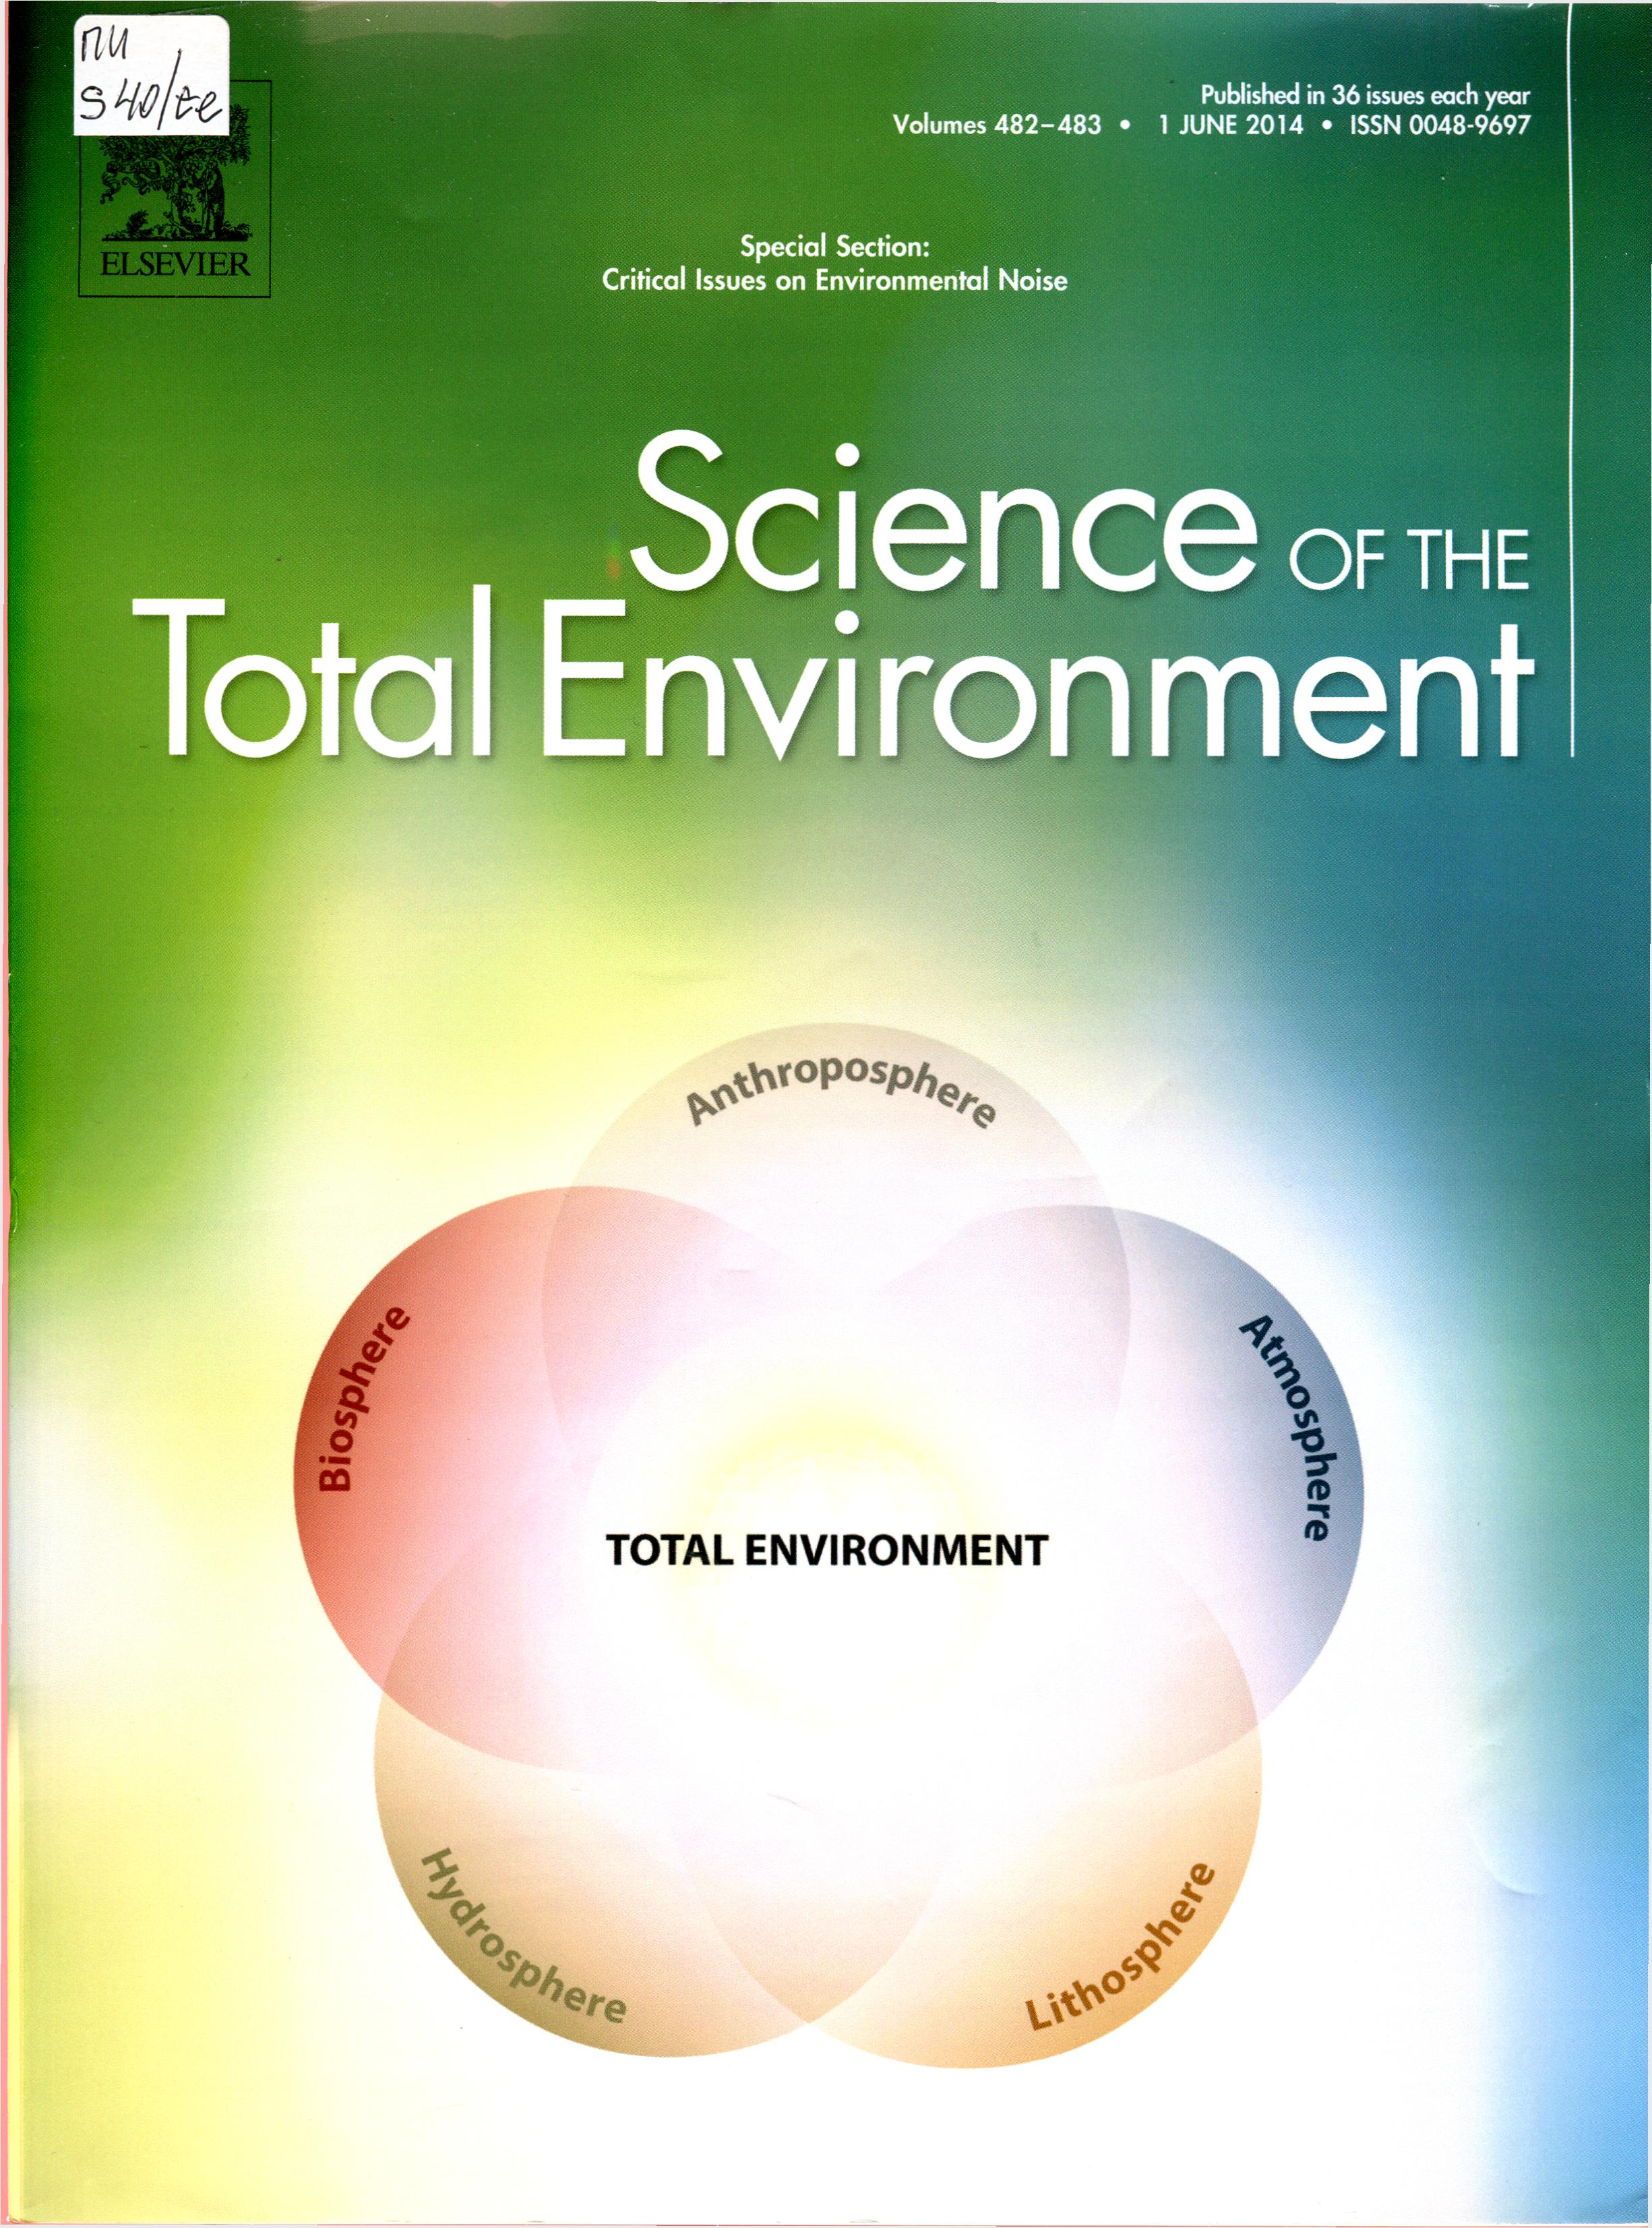 total environment centre essay The total environment centre (tec) has been campaigning for the environment for over 40 years founded at the height of the 'save the rainforests' movement in 1972.